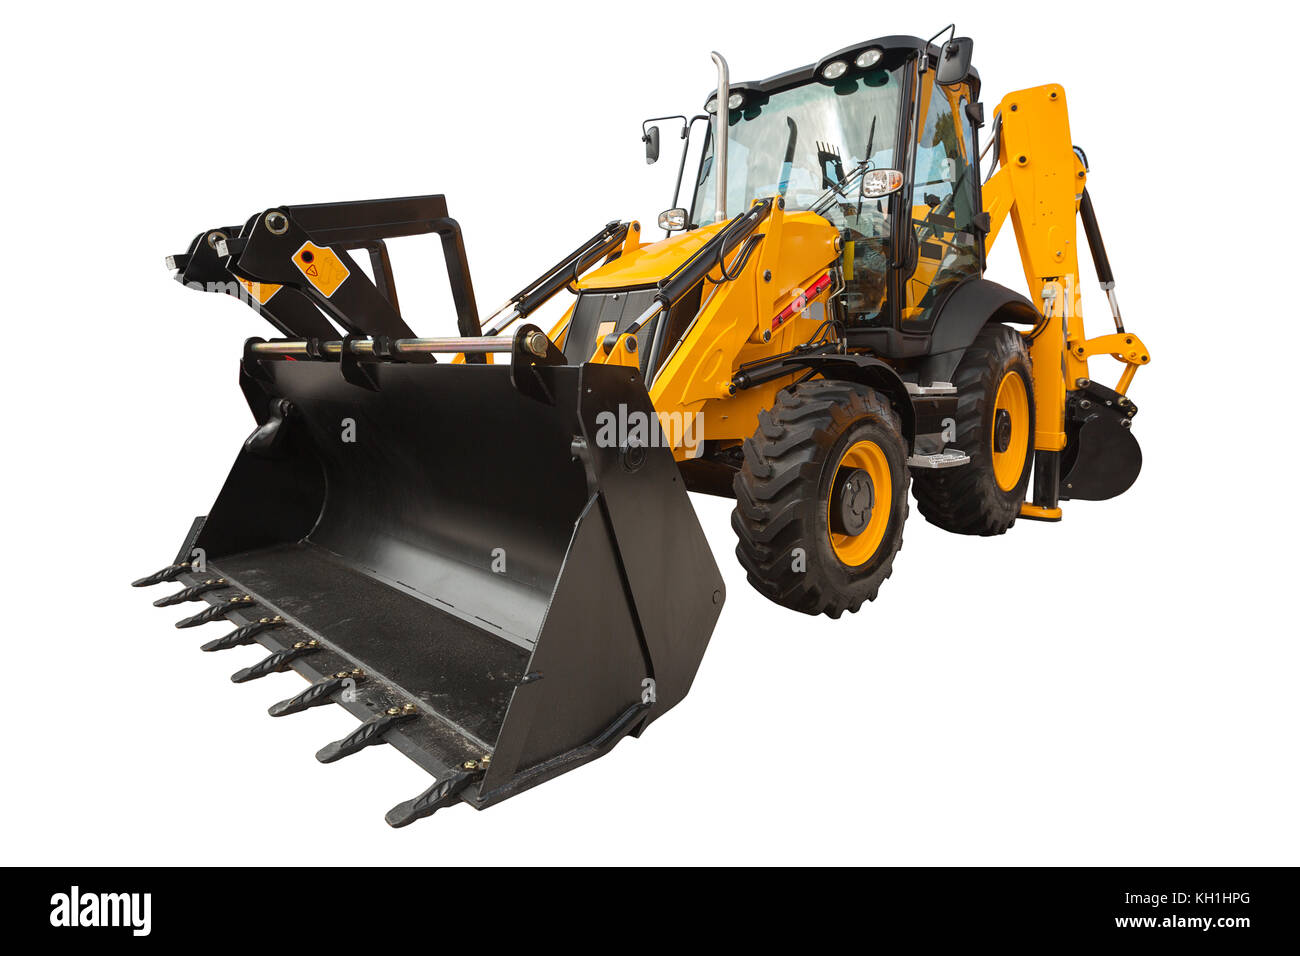 New modern excavator loader with clipping path isolated over white background - Stock Image